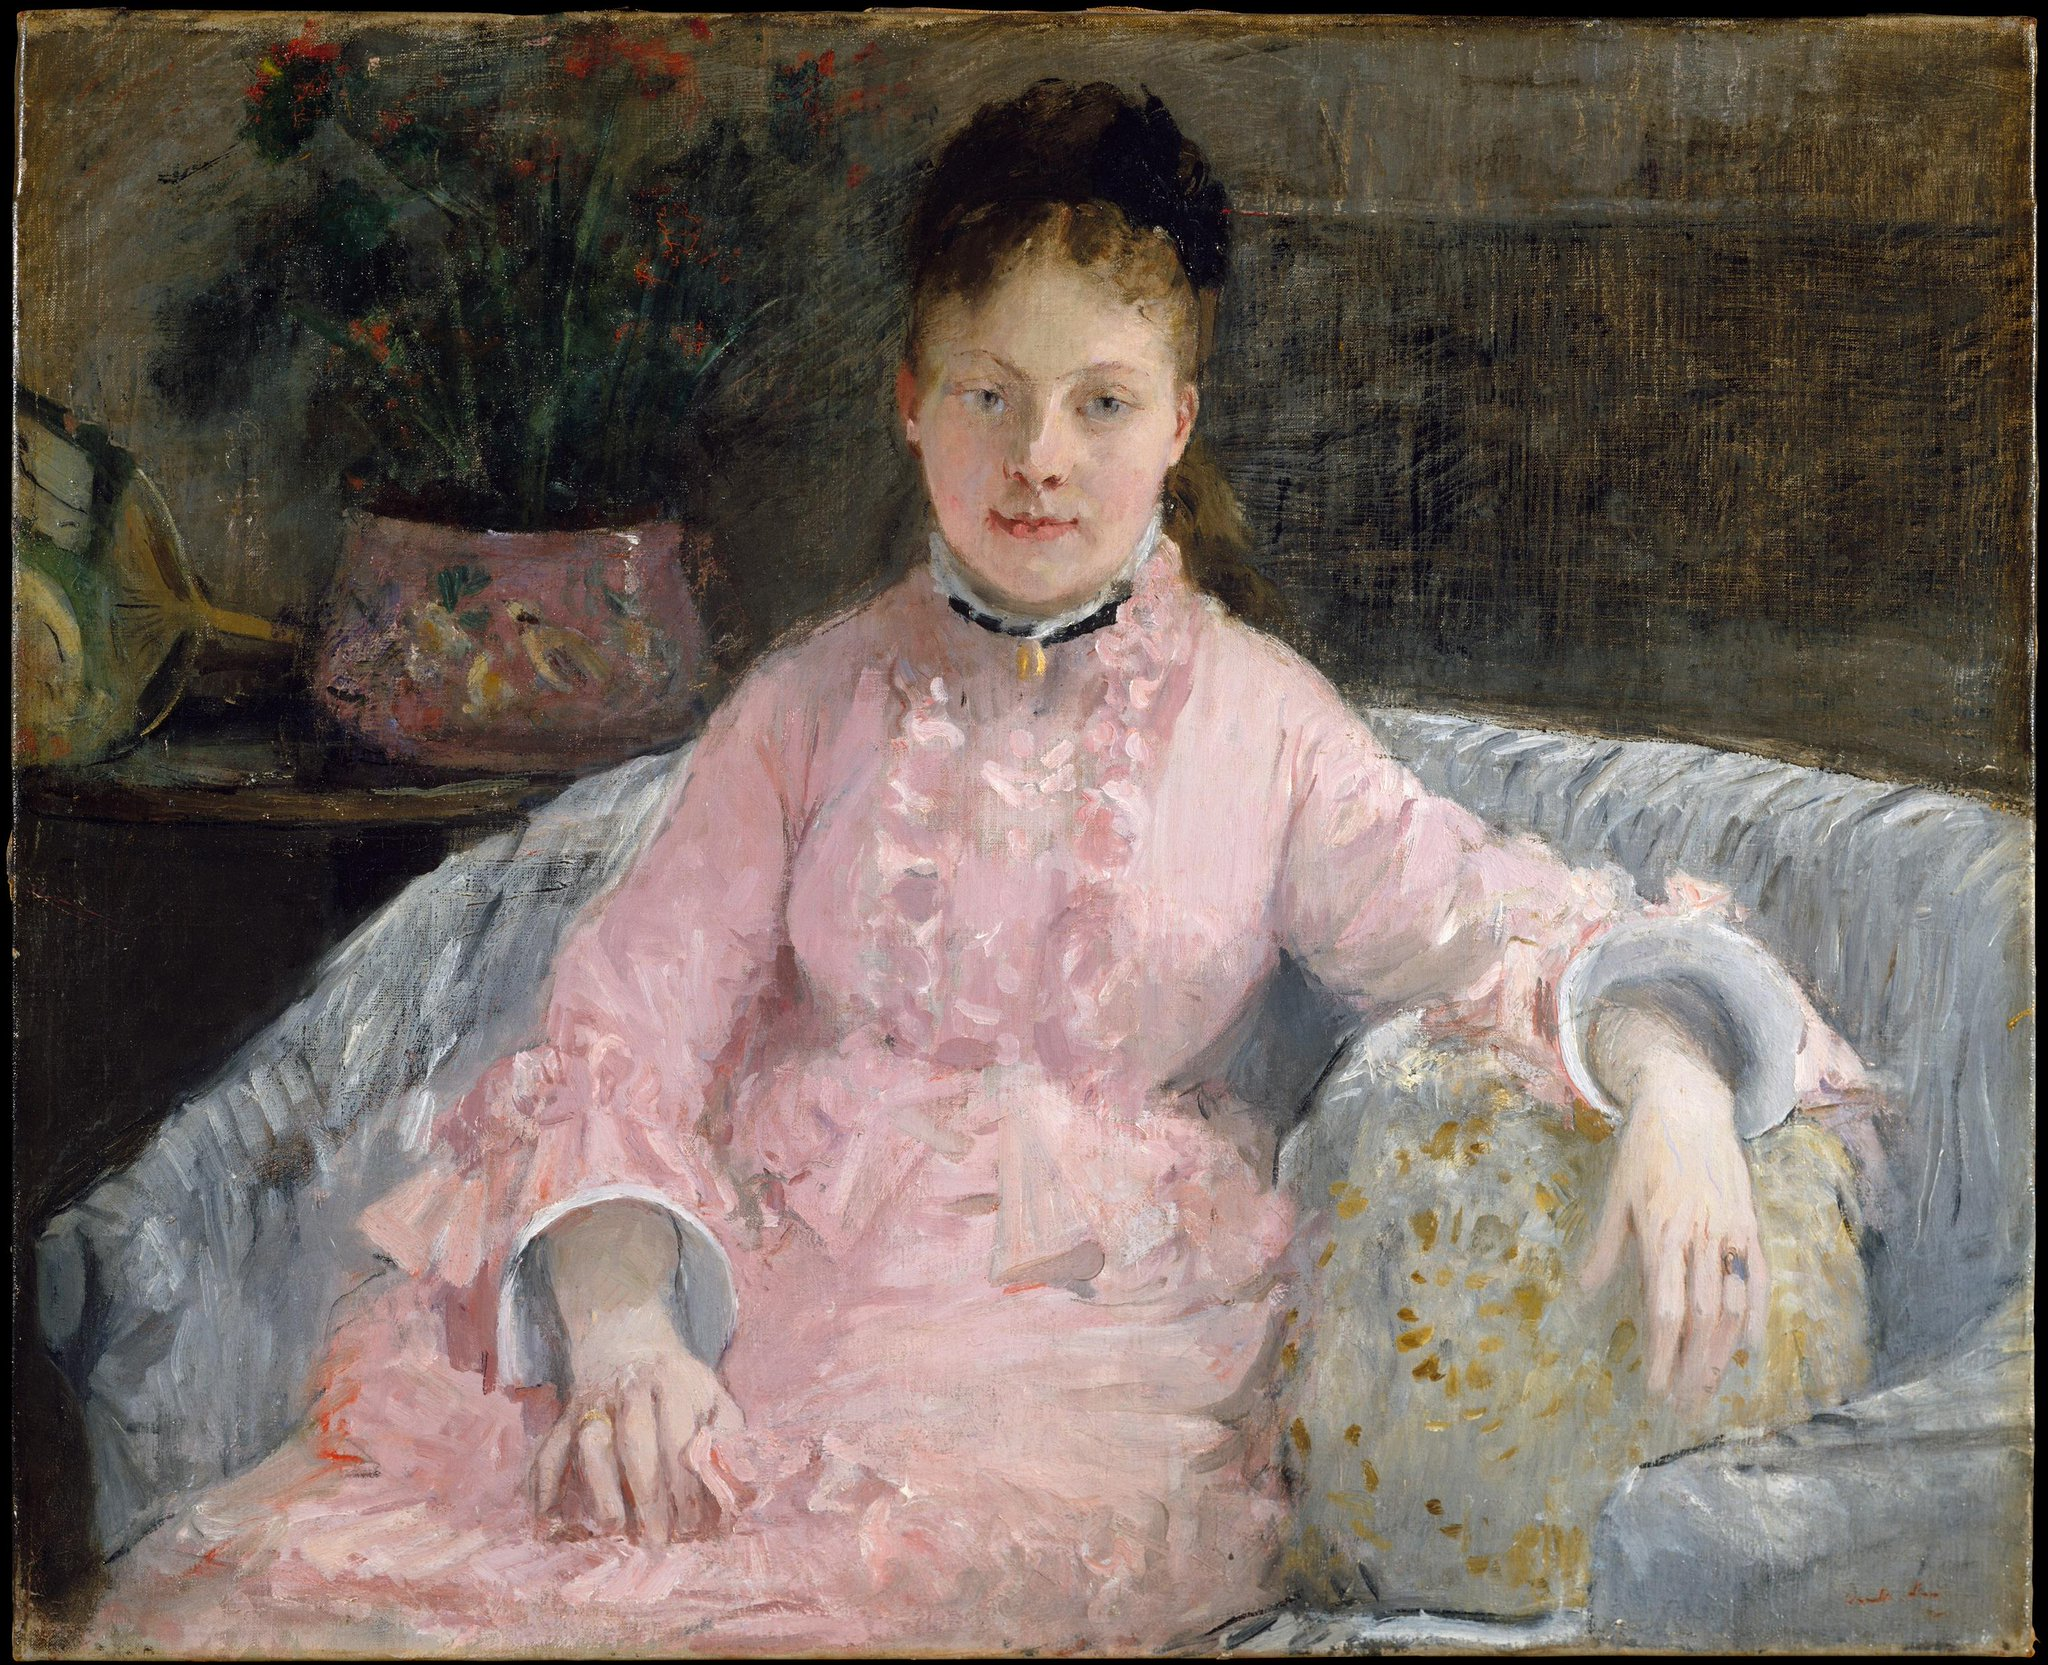 """The Metropolitan Museum of Art on Twitter: """"Did you know it's  #NationalPinkDay? Celebrate with Berthe Morisot's """"The Pink Dress.""""  http://t.co/uHojmz4GzO http://t.co/mW4Cb8CdXi"""""""